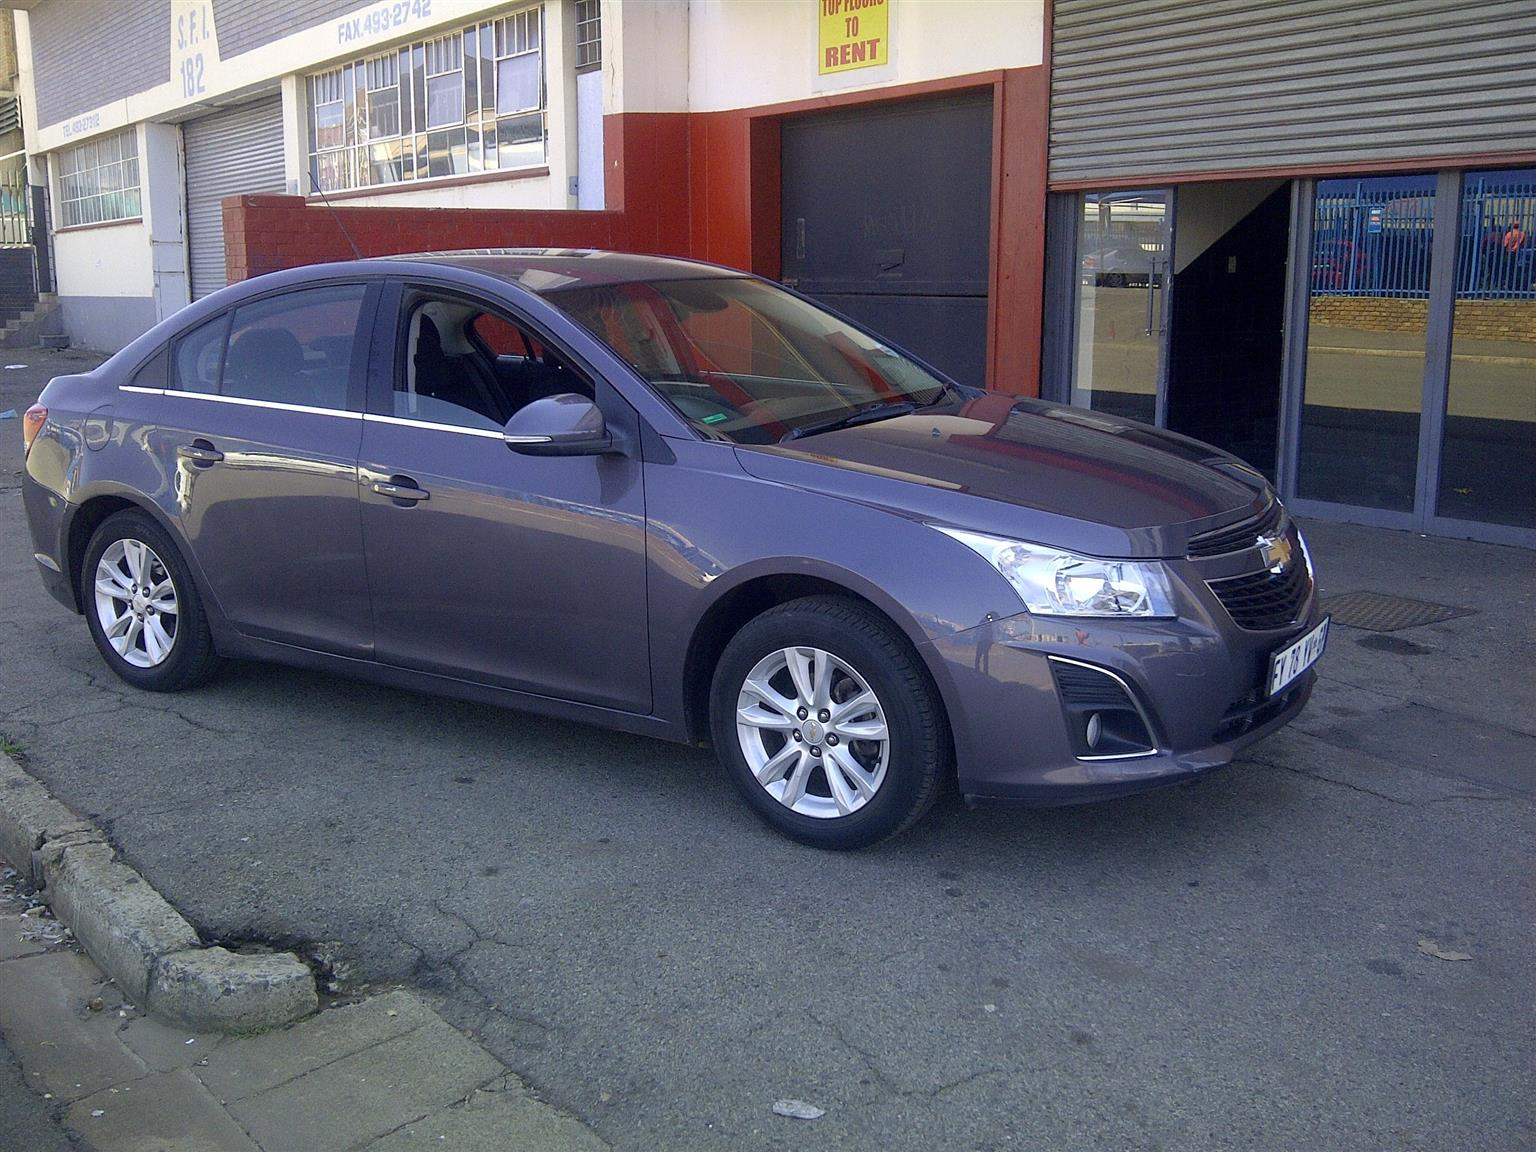 CheLSvrolet Cruze 1.6 , 5-door, Aux pot, Factory A/c, C/d player, Central locking, mobilizer.